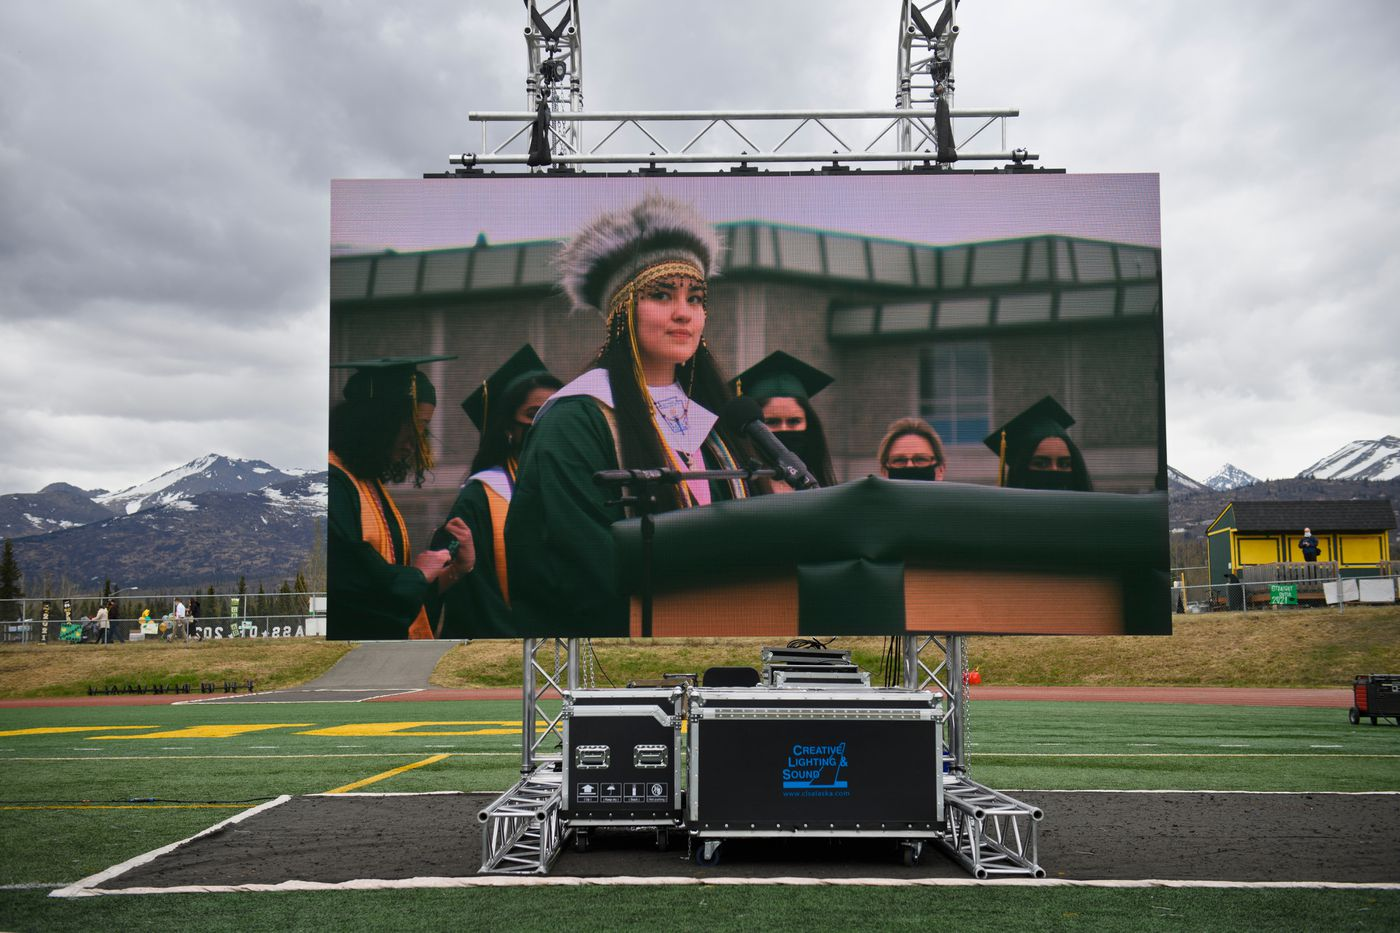 Wearing her Yup'ik headdress, Nyché Andre gives a land acknowledgement at the start of the Service High School graduation on May 12, 2021. Her image is shown on a video screen at the side of the stage. (Marc Lester / ADN)